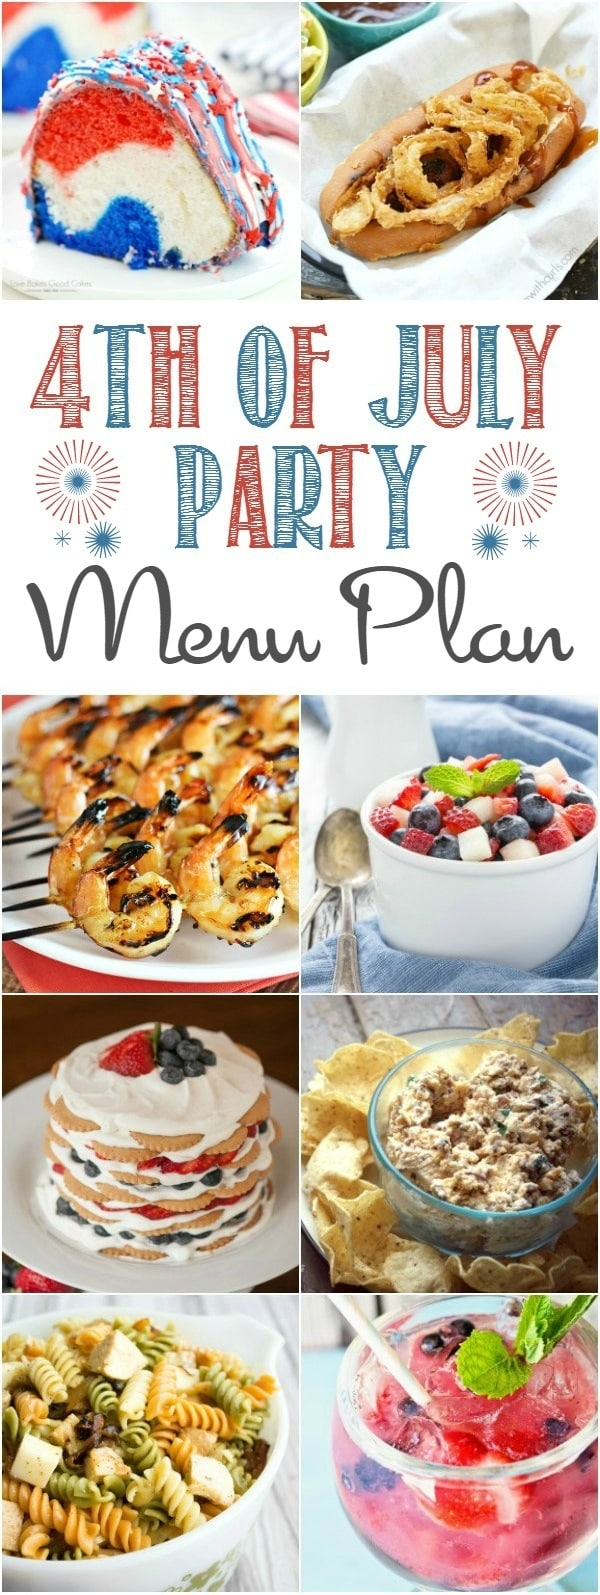 Check out this 4th of July Party Menu Plan- there are so many delicious options for your Independence Day picnic!